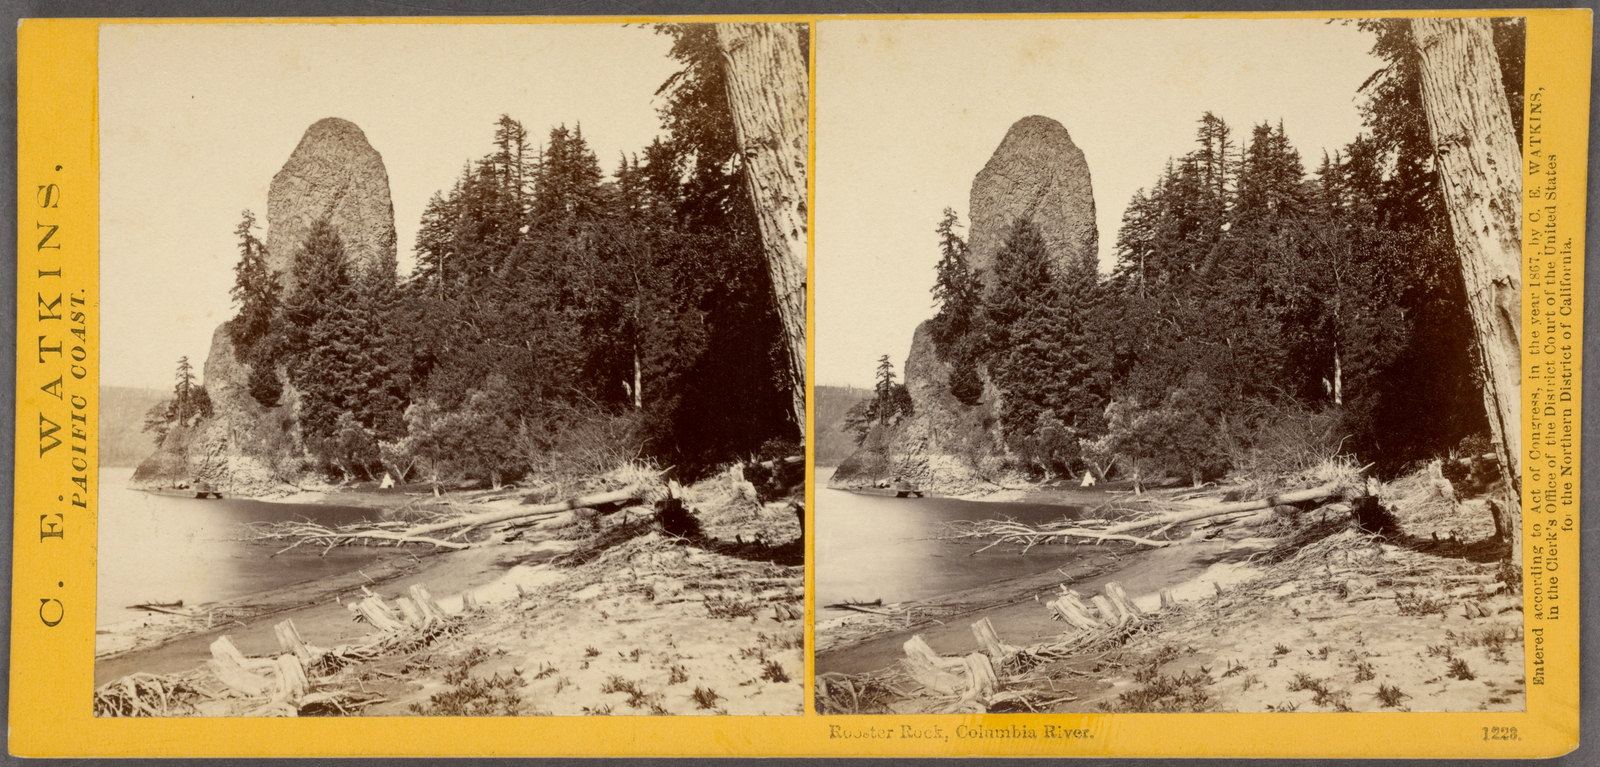 Rooster Rock, Columbia River.